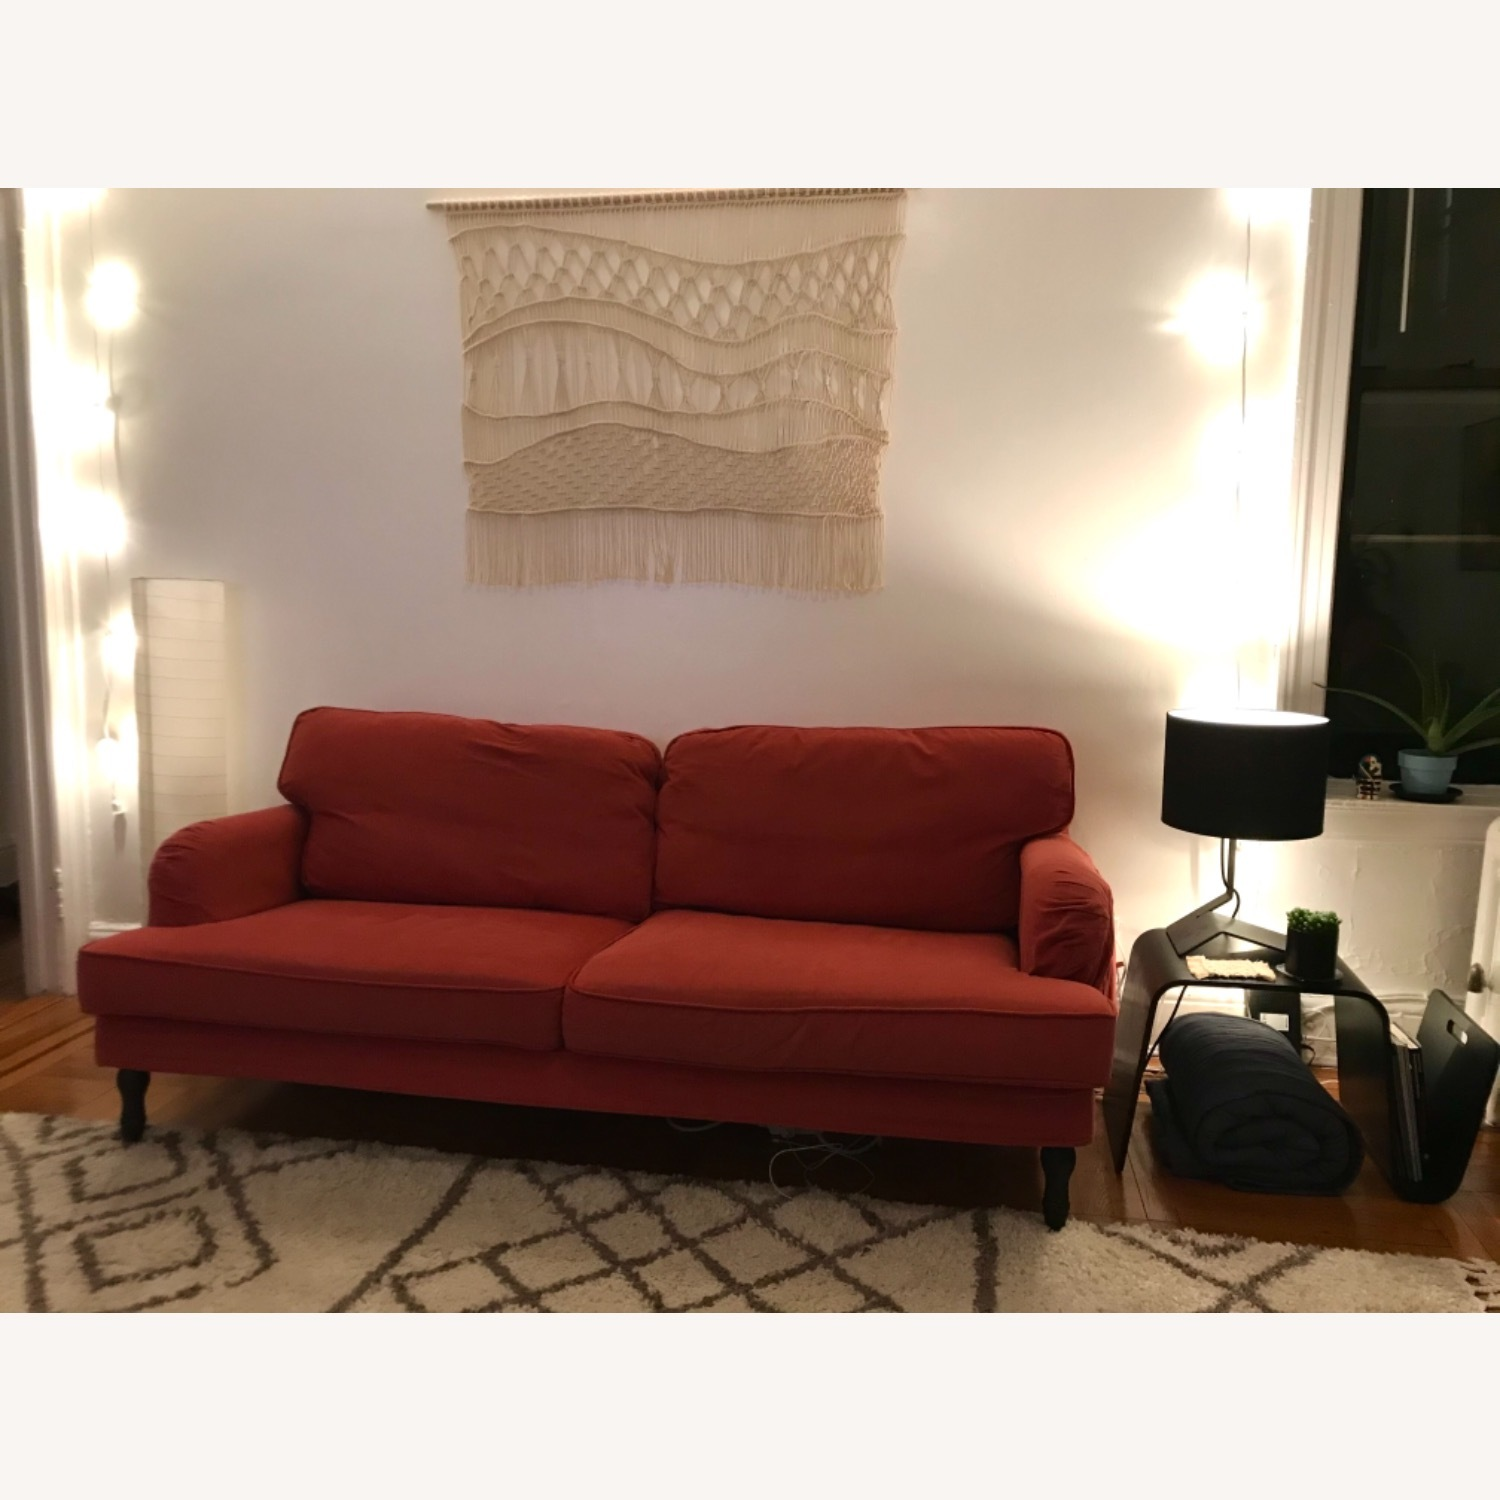 IKEA Red Stocksund Couch - image-4